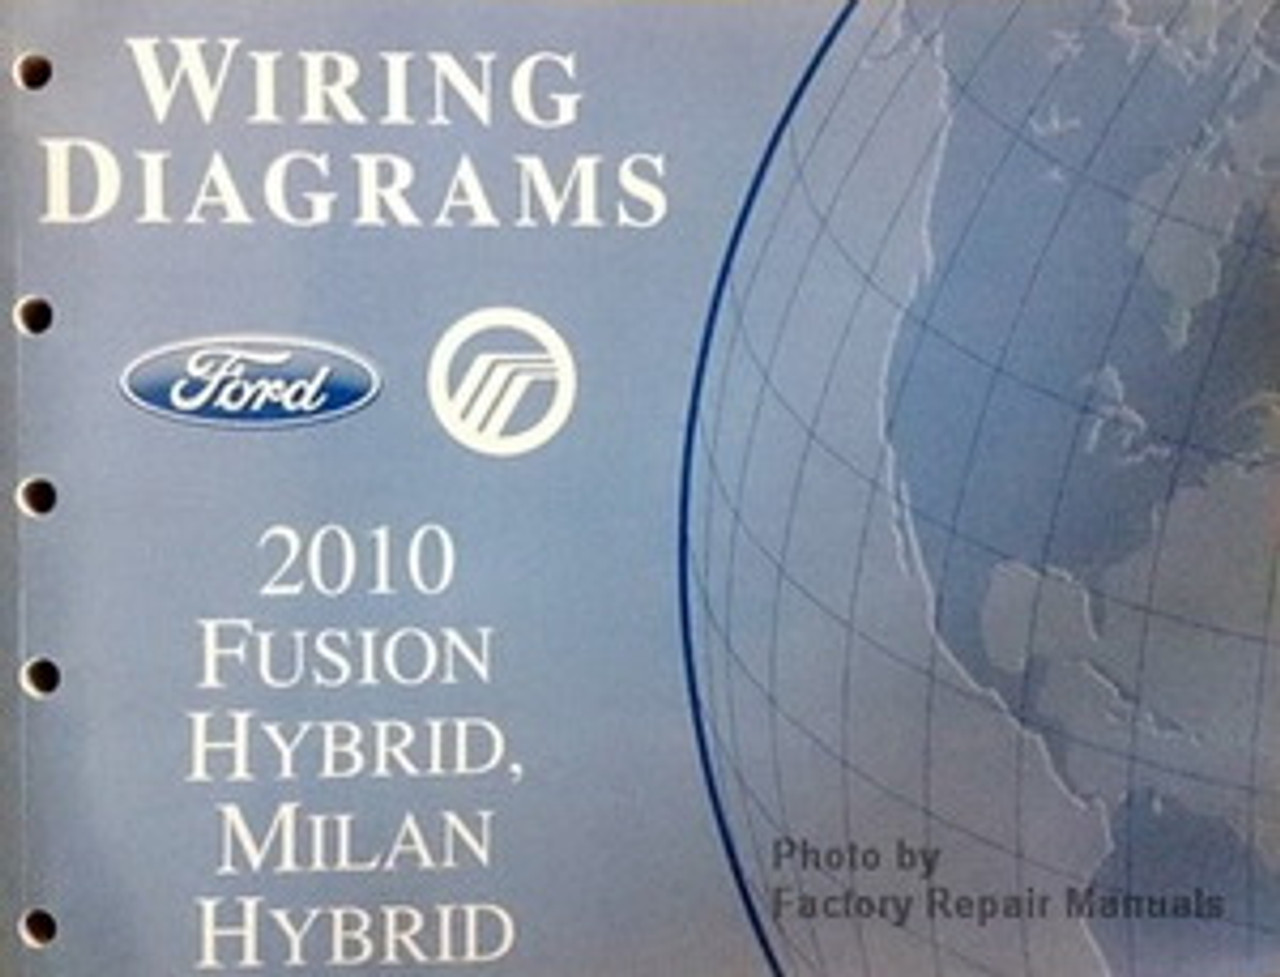 2010 Ford Fusion and Mercury Milan Electrical Wiring Diagrams Manual -  Hybrid Models - Factory Repair ManualsFactory Repair Manuals